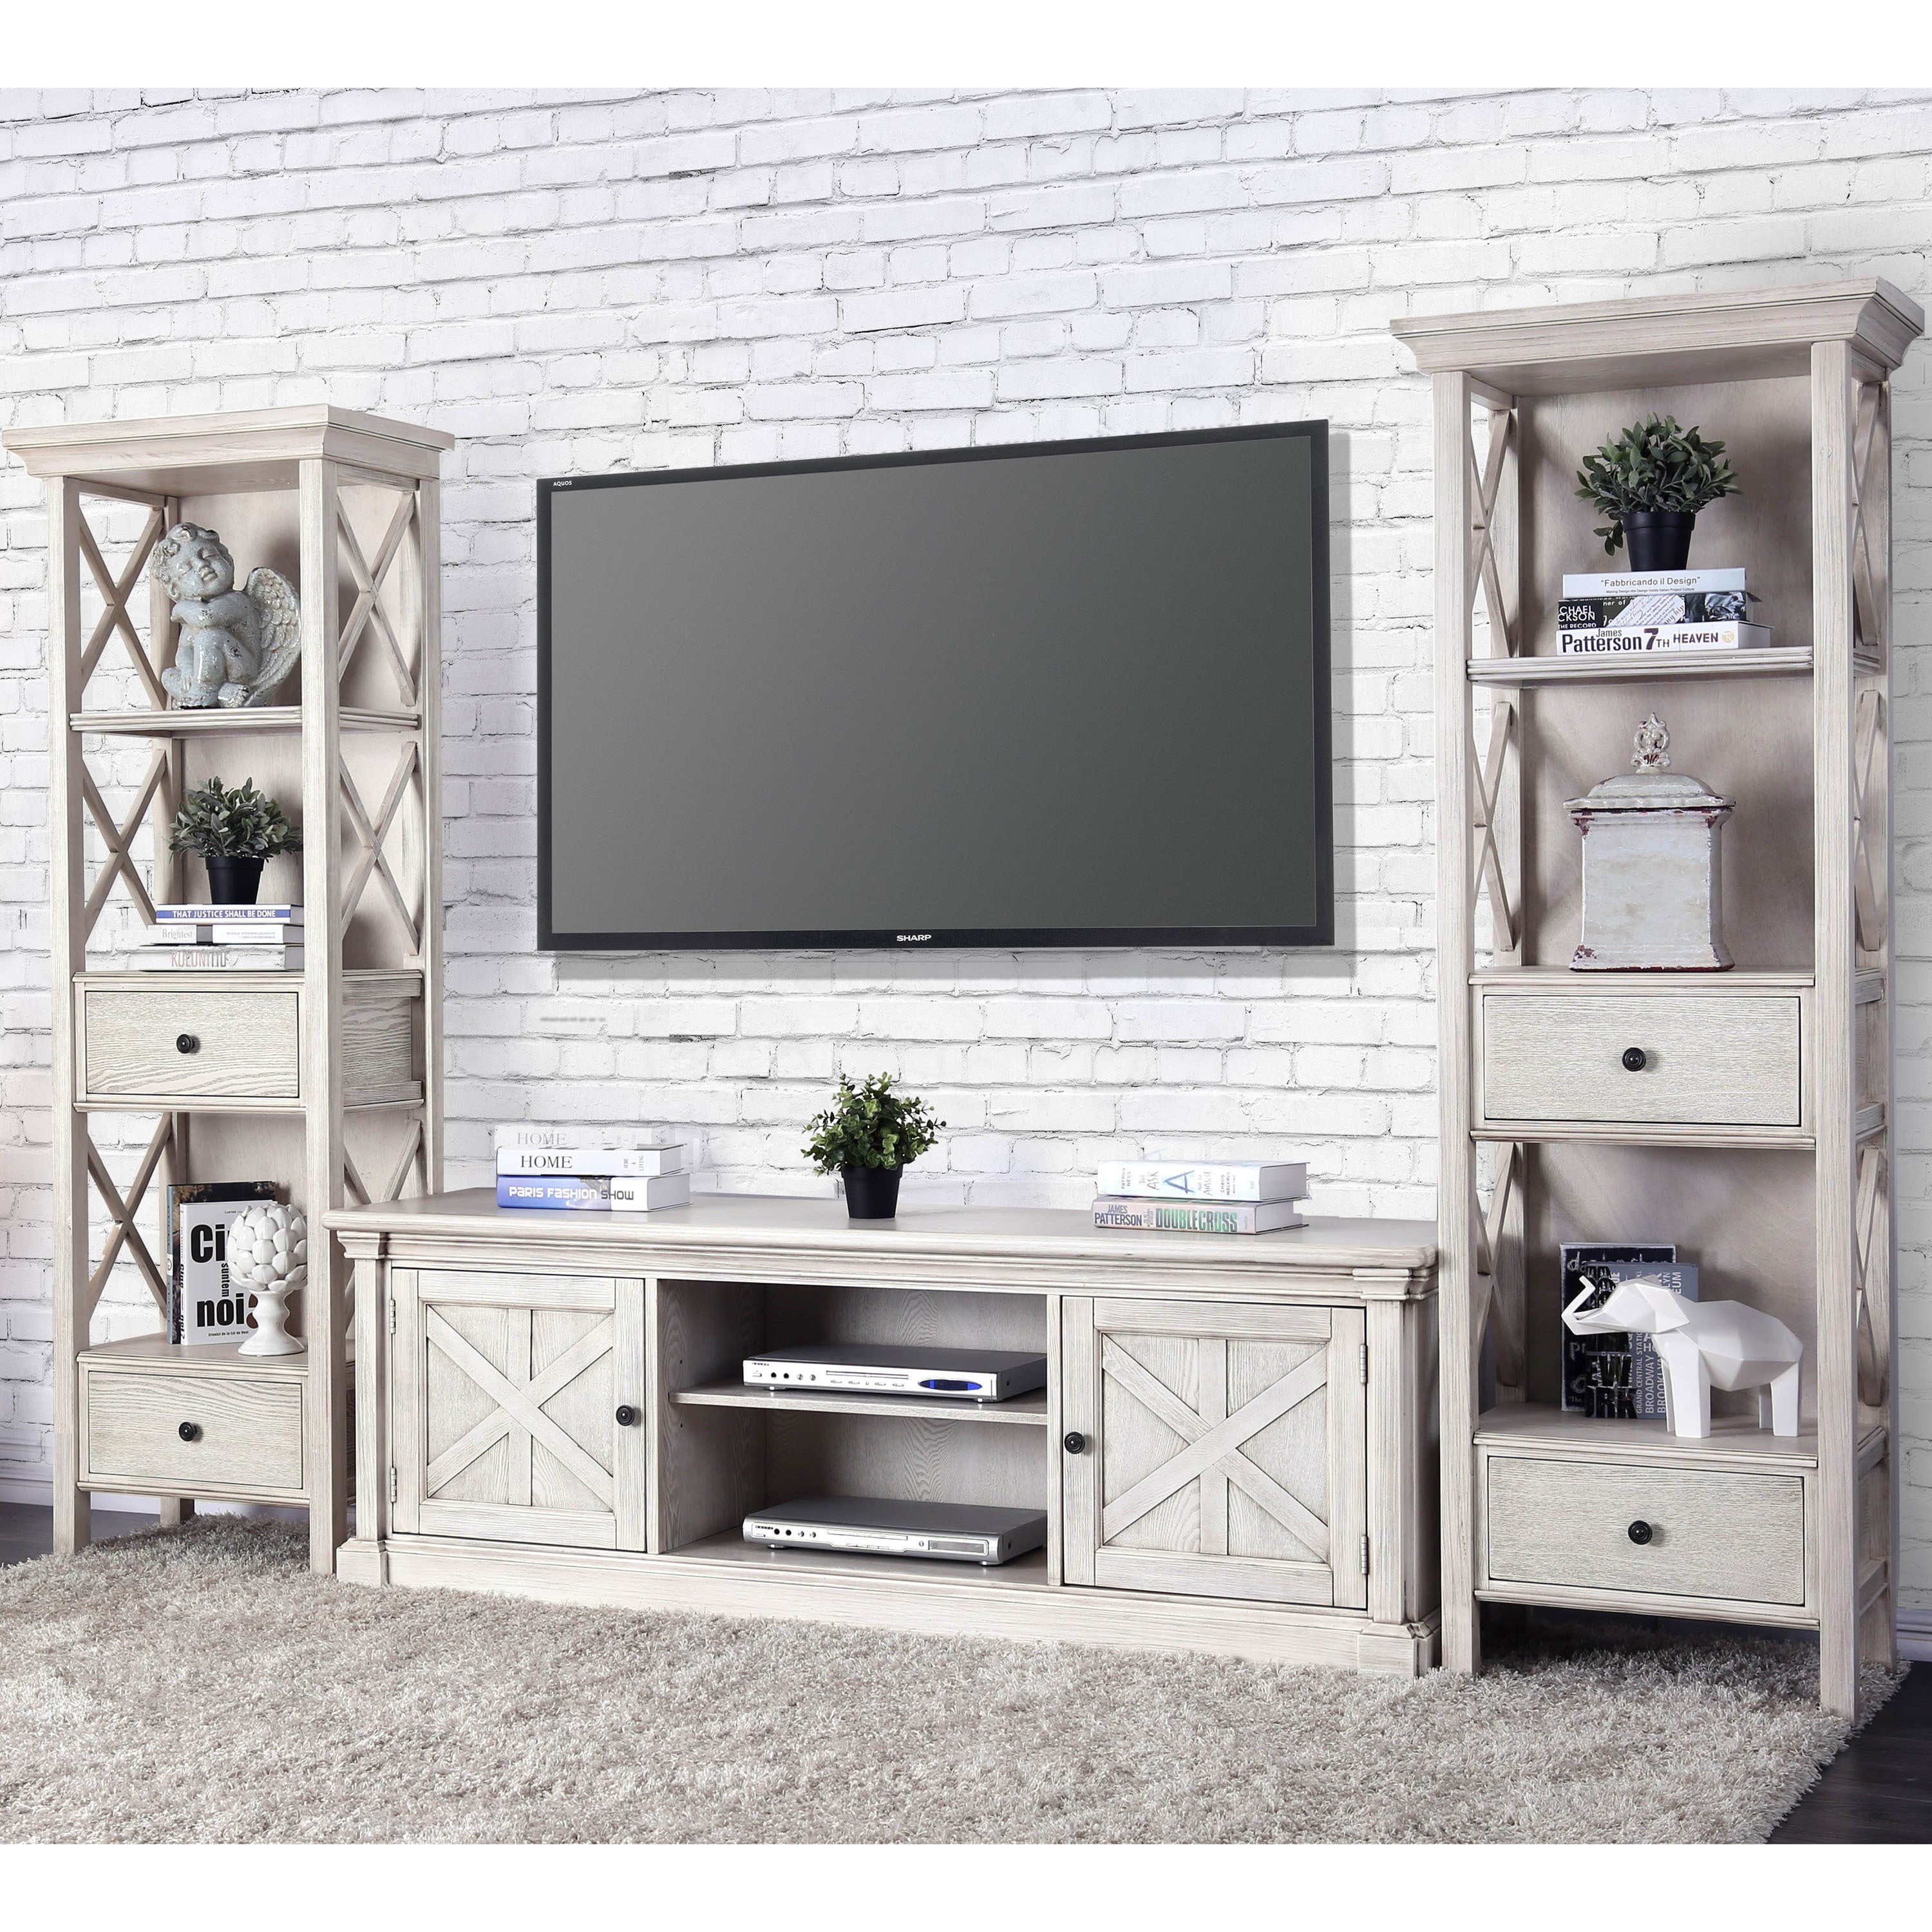 Furniture of America Lyle Rustic Antique White TV Stand Free